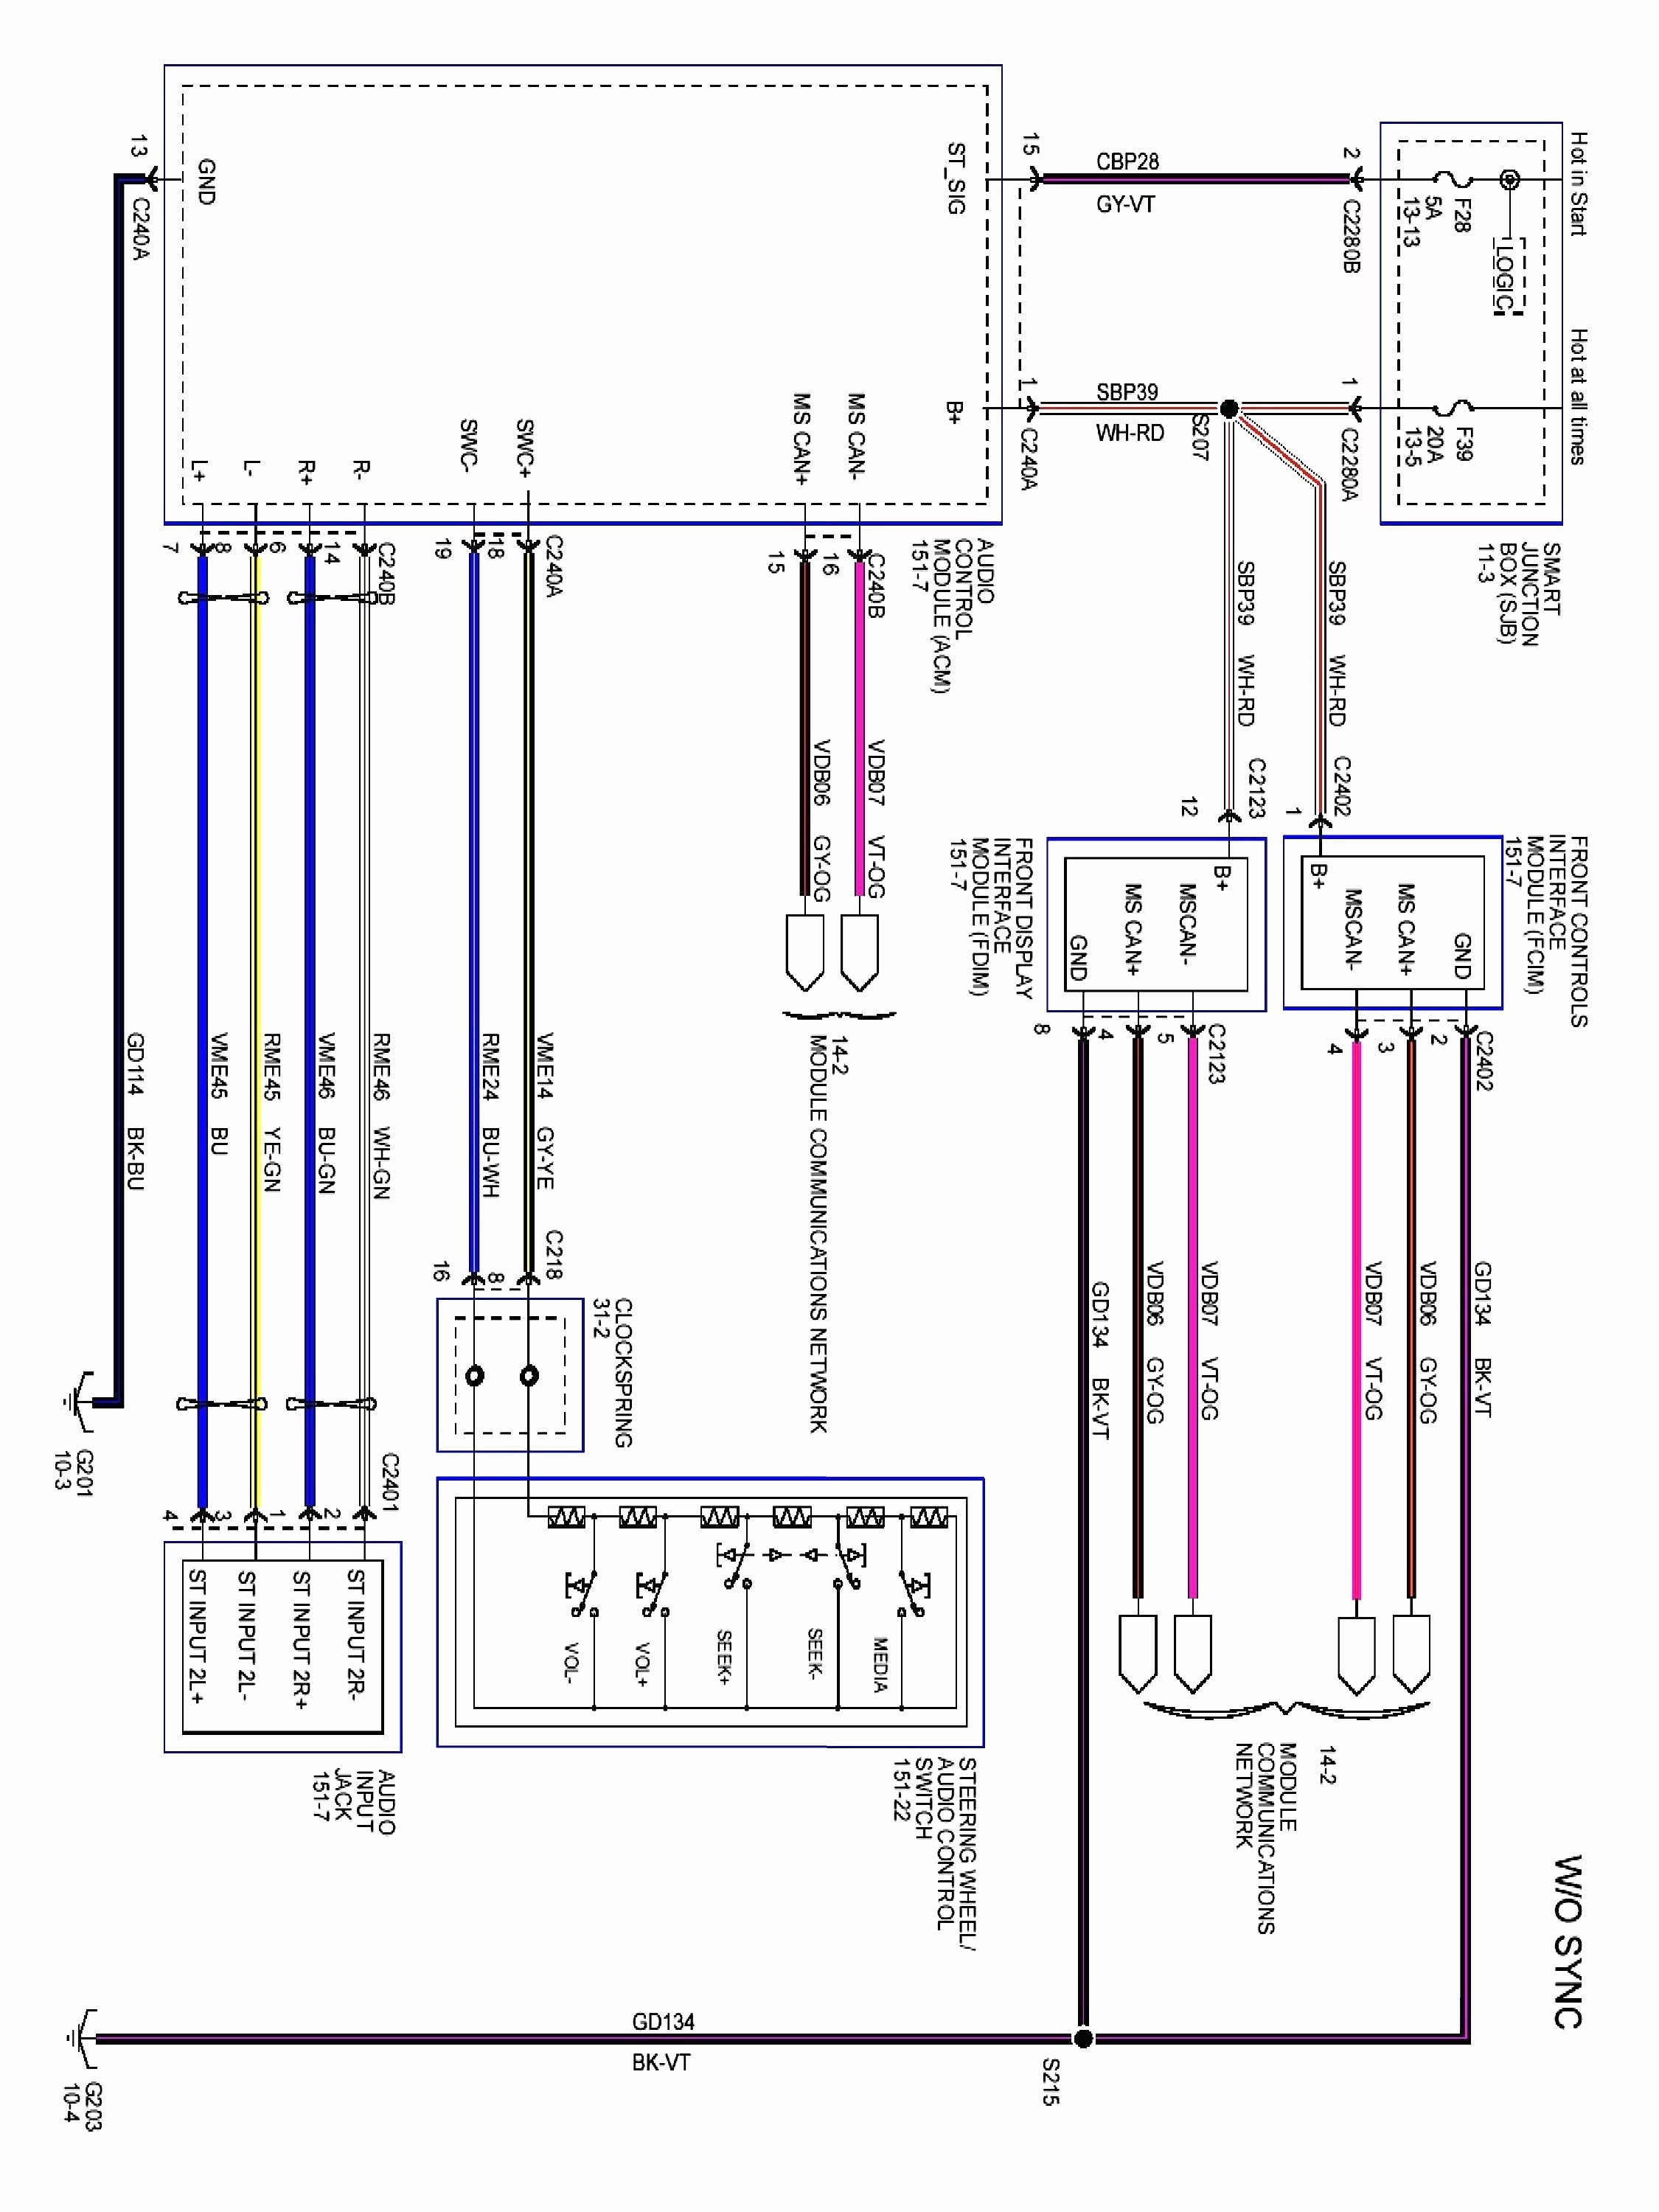 wg_2817] wiring diagrams free weebly download diagram schematic  atota seme boapu mohammedshrine librar wiring 101